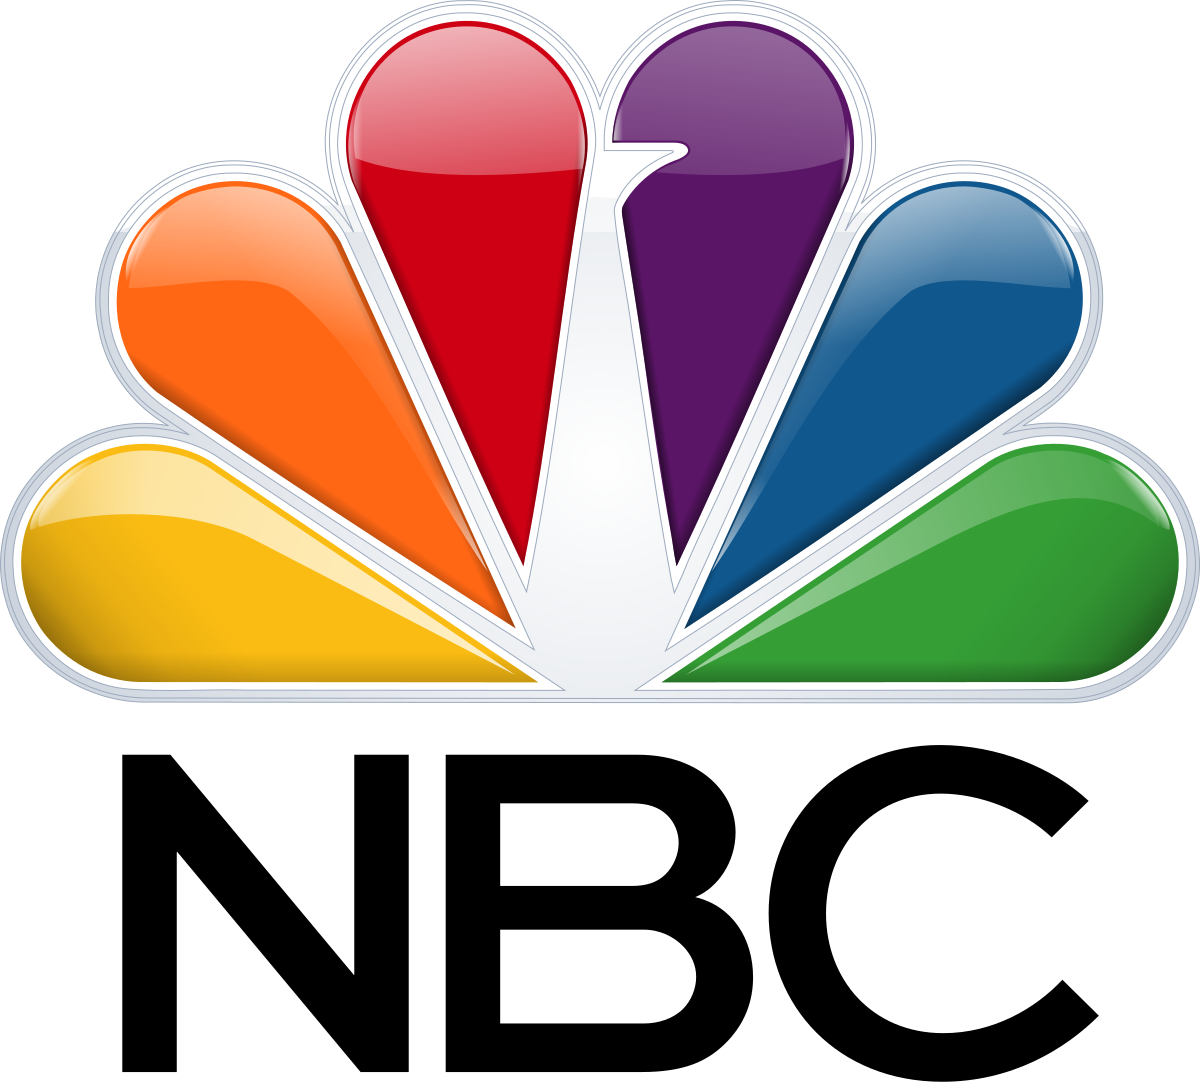 Nbc wikipedia . Superstore clip amy svg stock